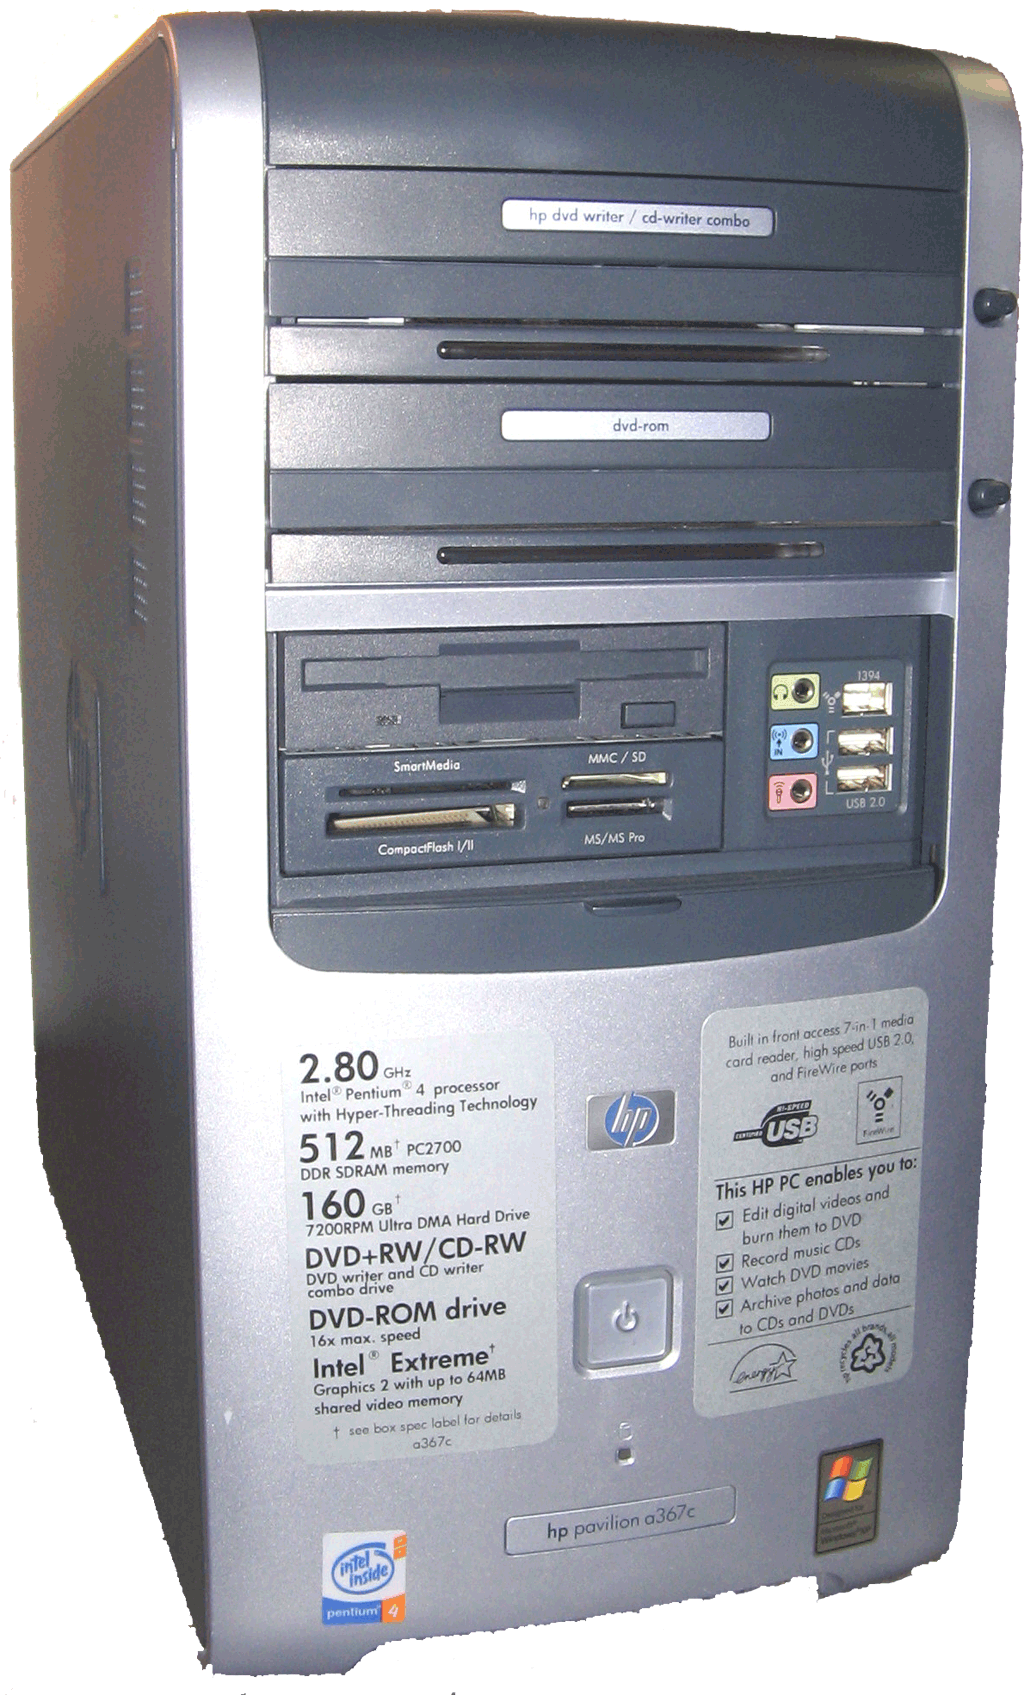 Mini tower PC with 2 optimal drives, 4 media ports, one floppy disk and sound input/output